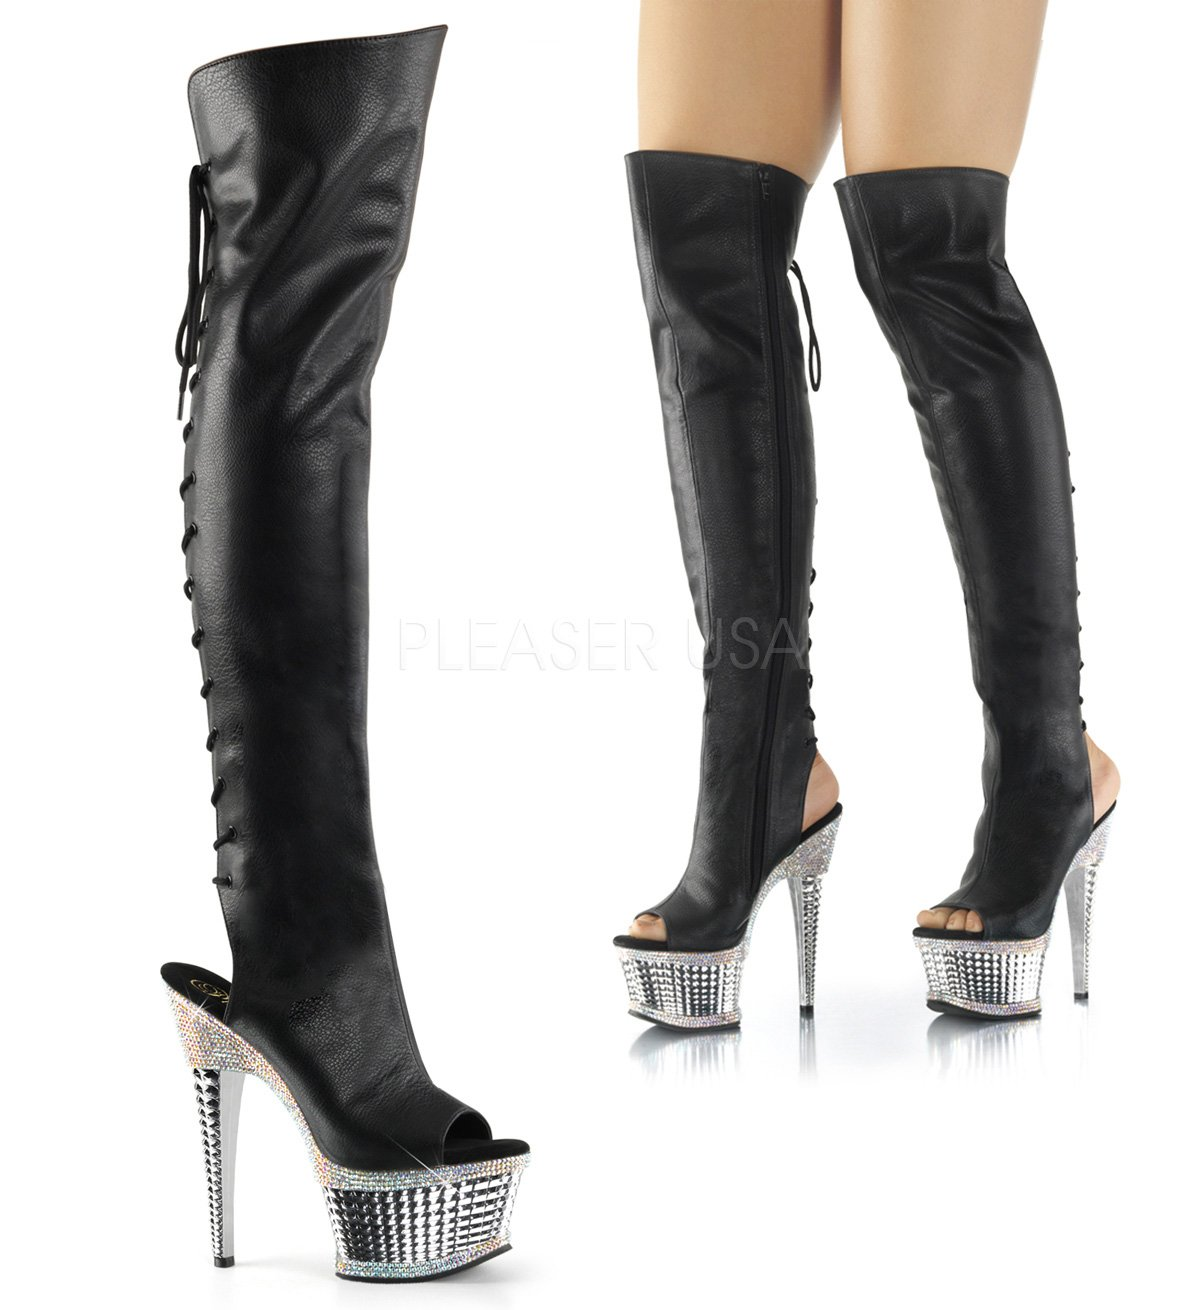 Pleaser Women's Illusion 3019RS Thigh High Boots, Black PU Leather, Synthetic, 6 M by Pleaser